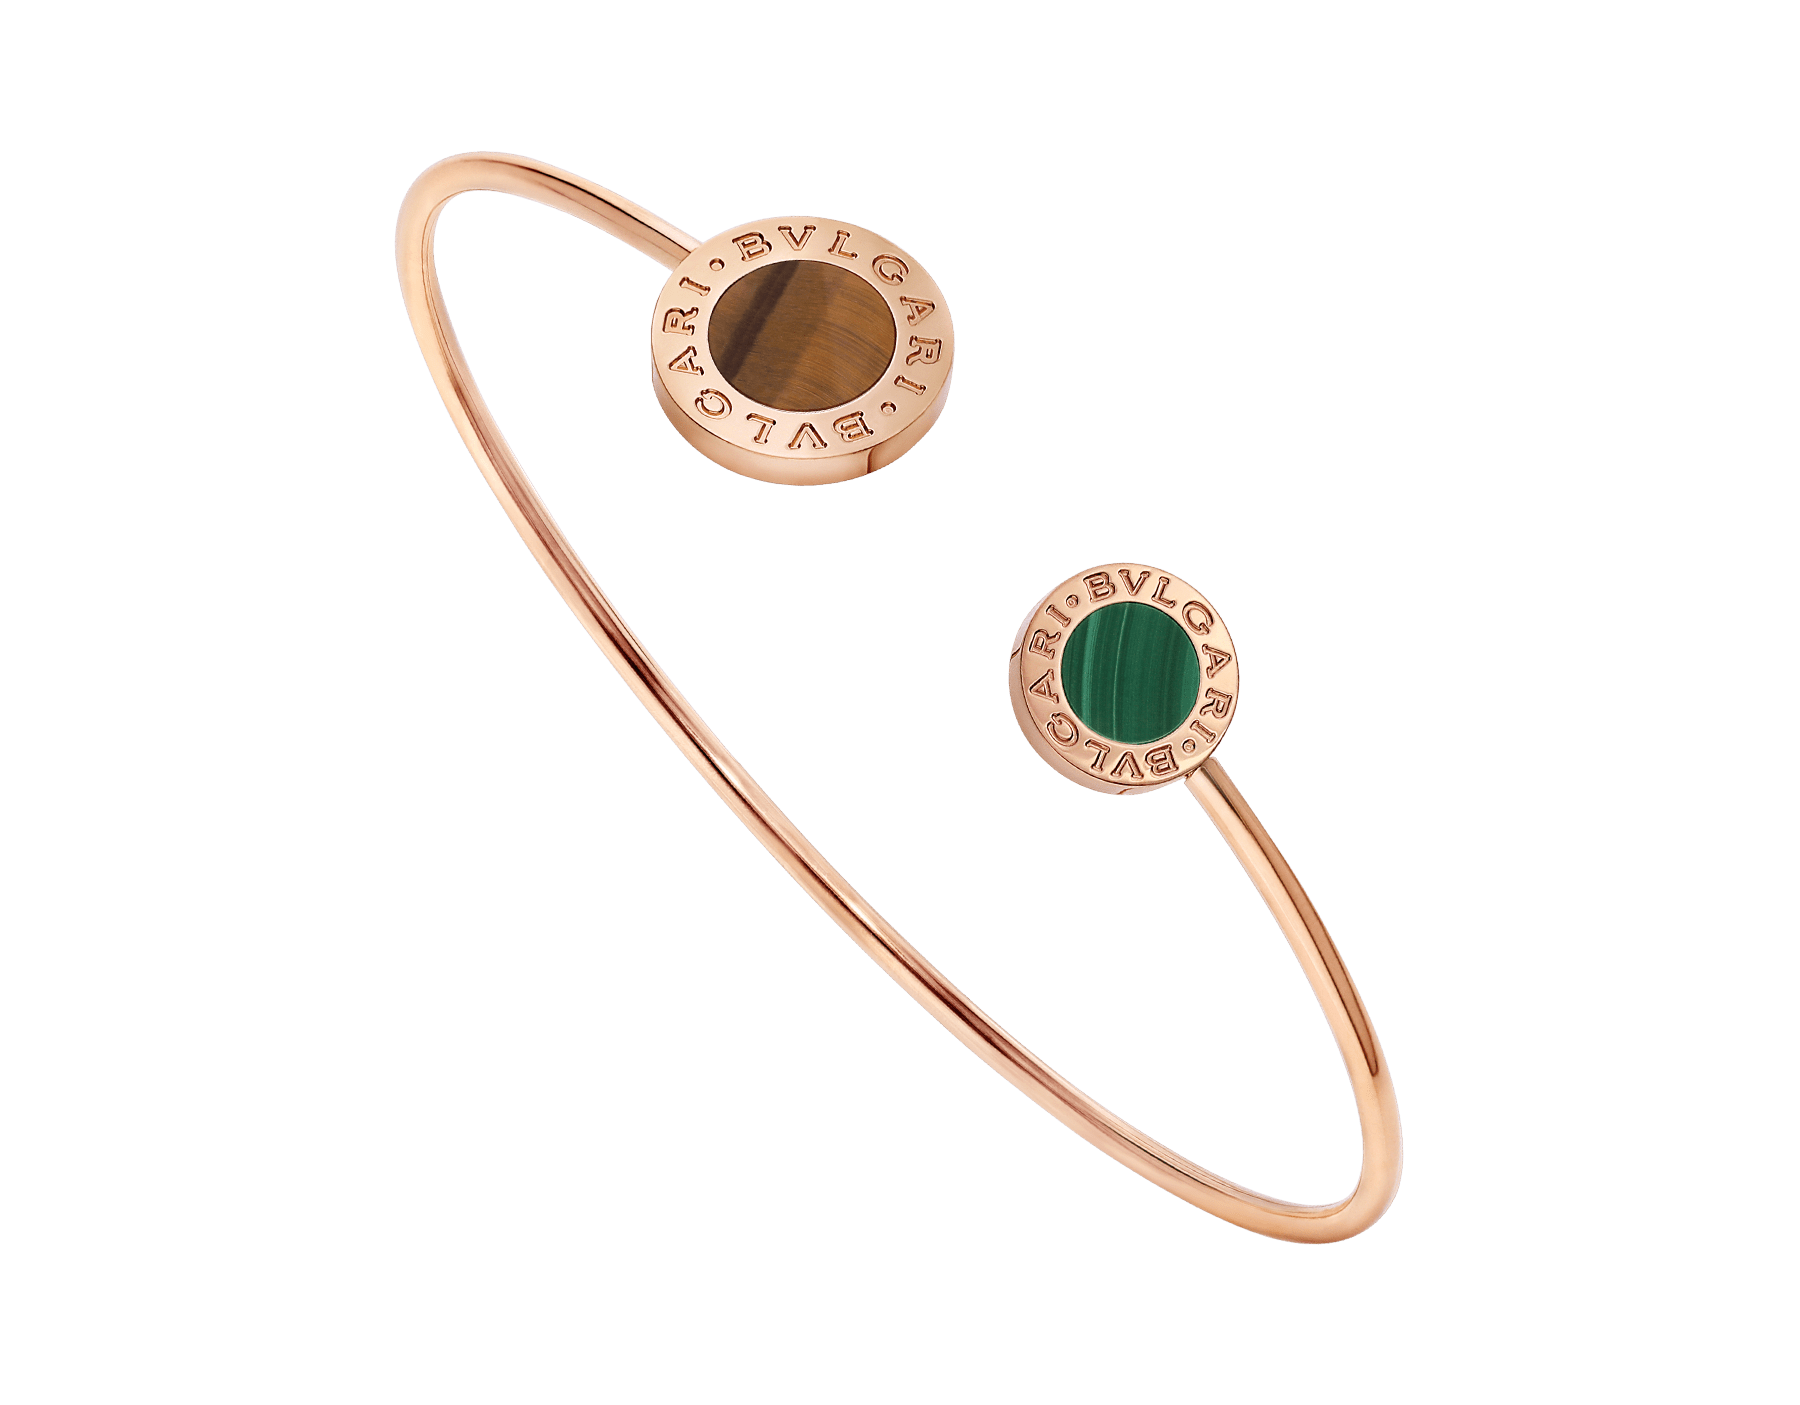 BVLGARI BVLGARI 18 kt rose gold bracelet set with tiger's eye an malachite elements BR858695 image 1